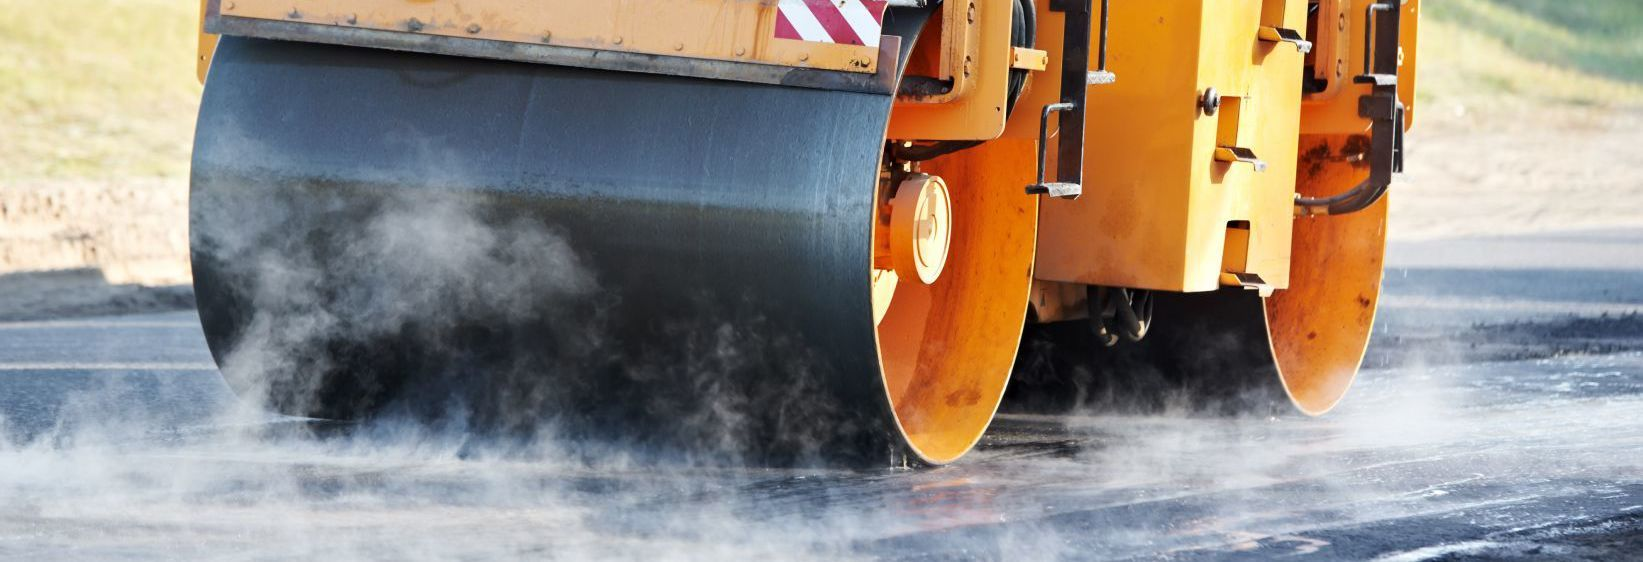 Asphalt services in the Waikato area